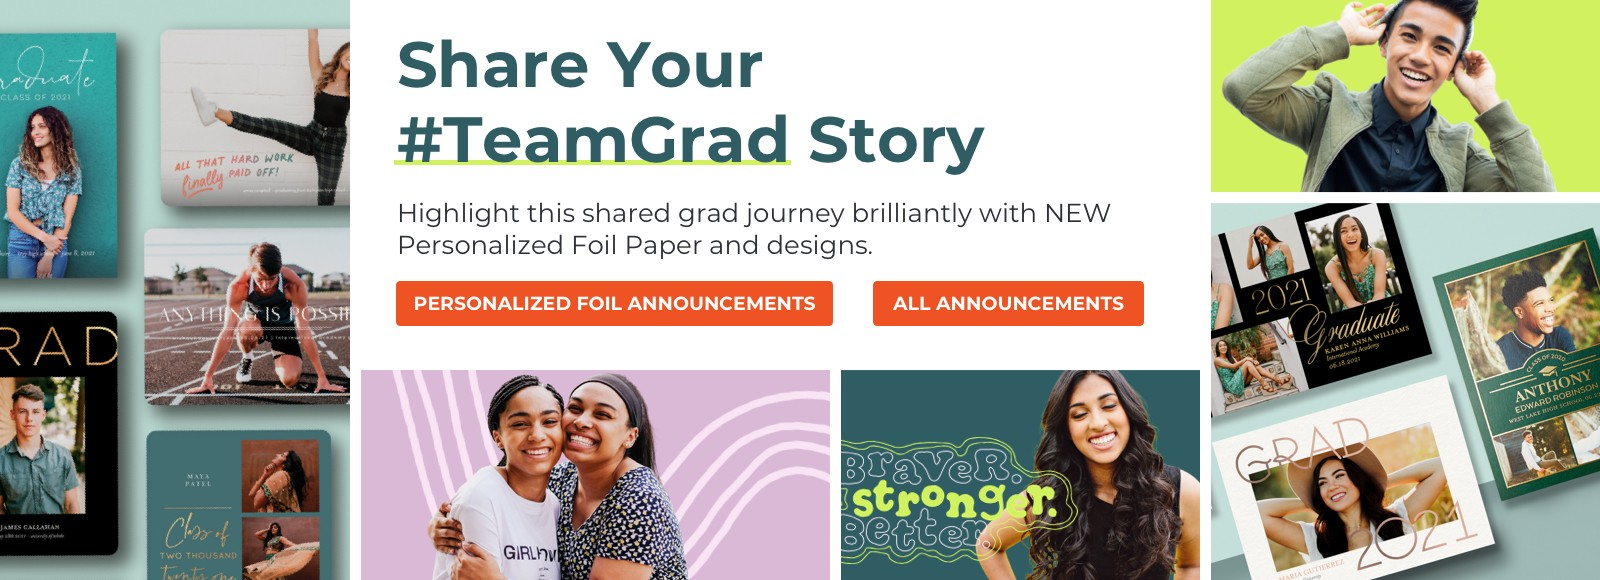 Highlight this shared grad journey brilliantly with NEW Personalized Foil Paper and designs.